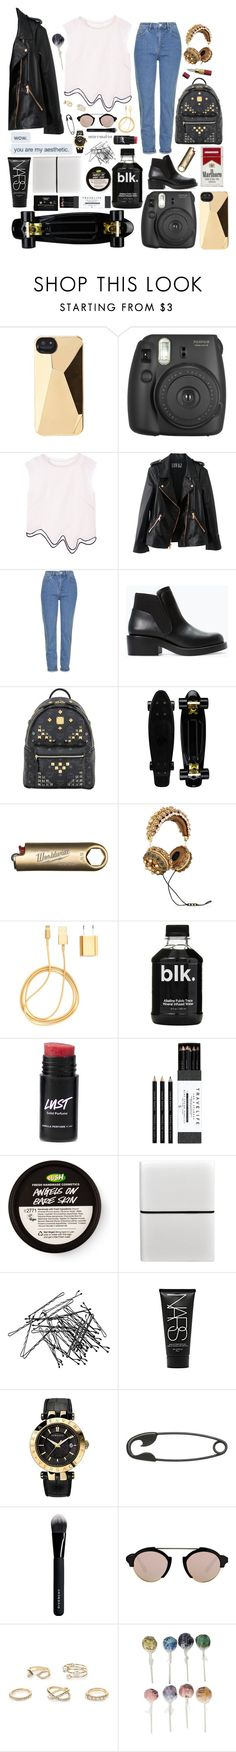 """""""//YOU ARE MY AESTHETIC//"""" by beingsuperwhomerlockwood ❤ liked on Polyvore featuring Marc by Marc Jacobs, Rosegold, Topshop, Zara, MCM, Dolce&Gabbana, PhunkeeTree, Mark's Tokyo Edge, CASSETTE and H&M"""